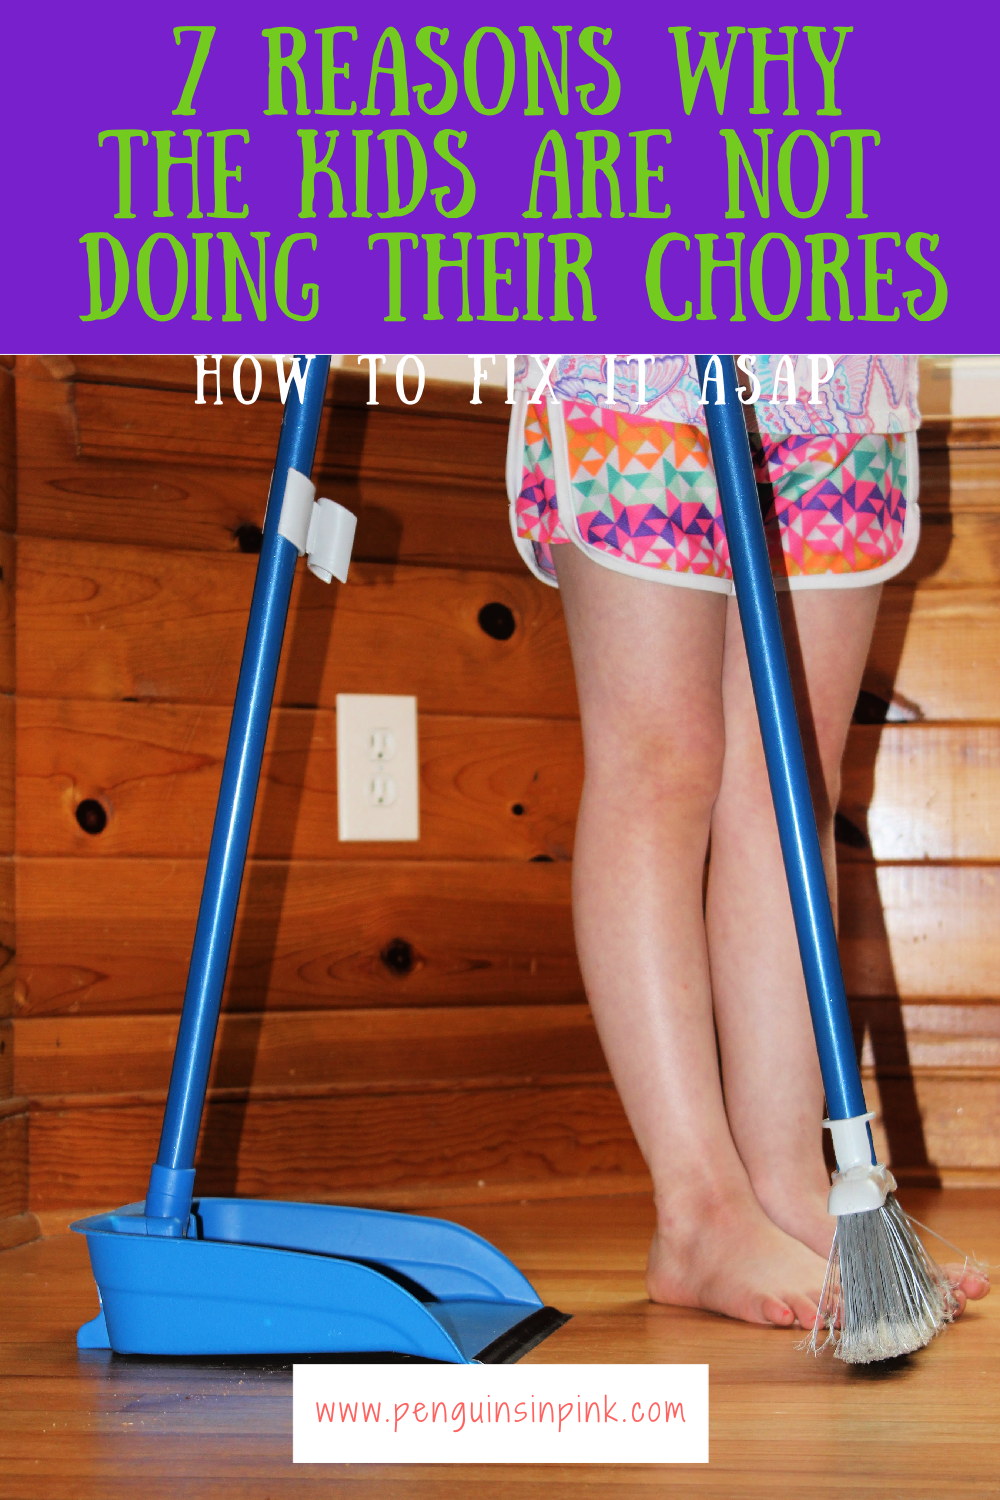 Trying to figure out why the kids are neglecting their chores? Learn 7 reasons why the kids are not doing their chores, how to fix it ASAP, and helpful tips to make getting the chores done easily.